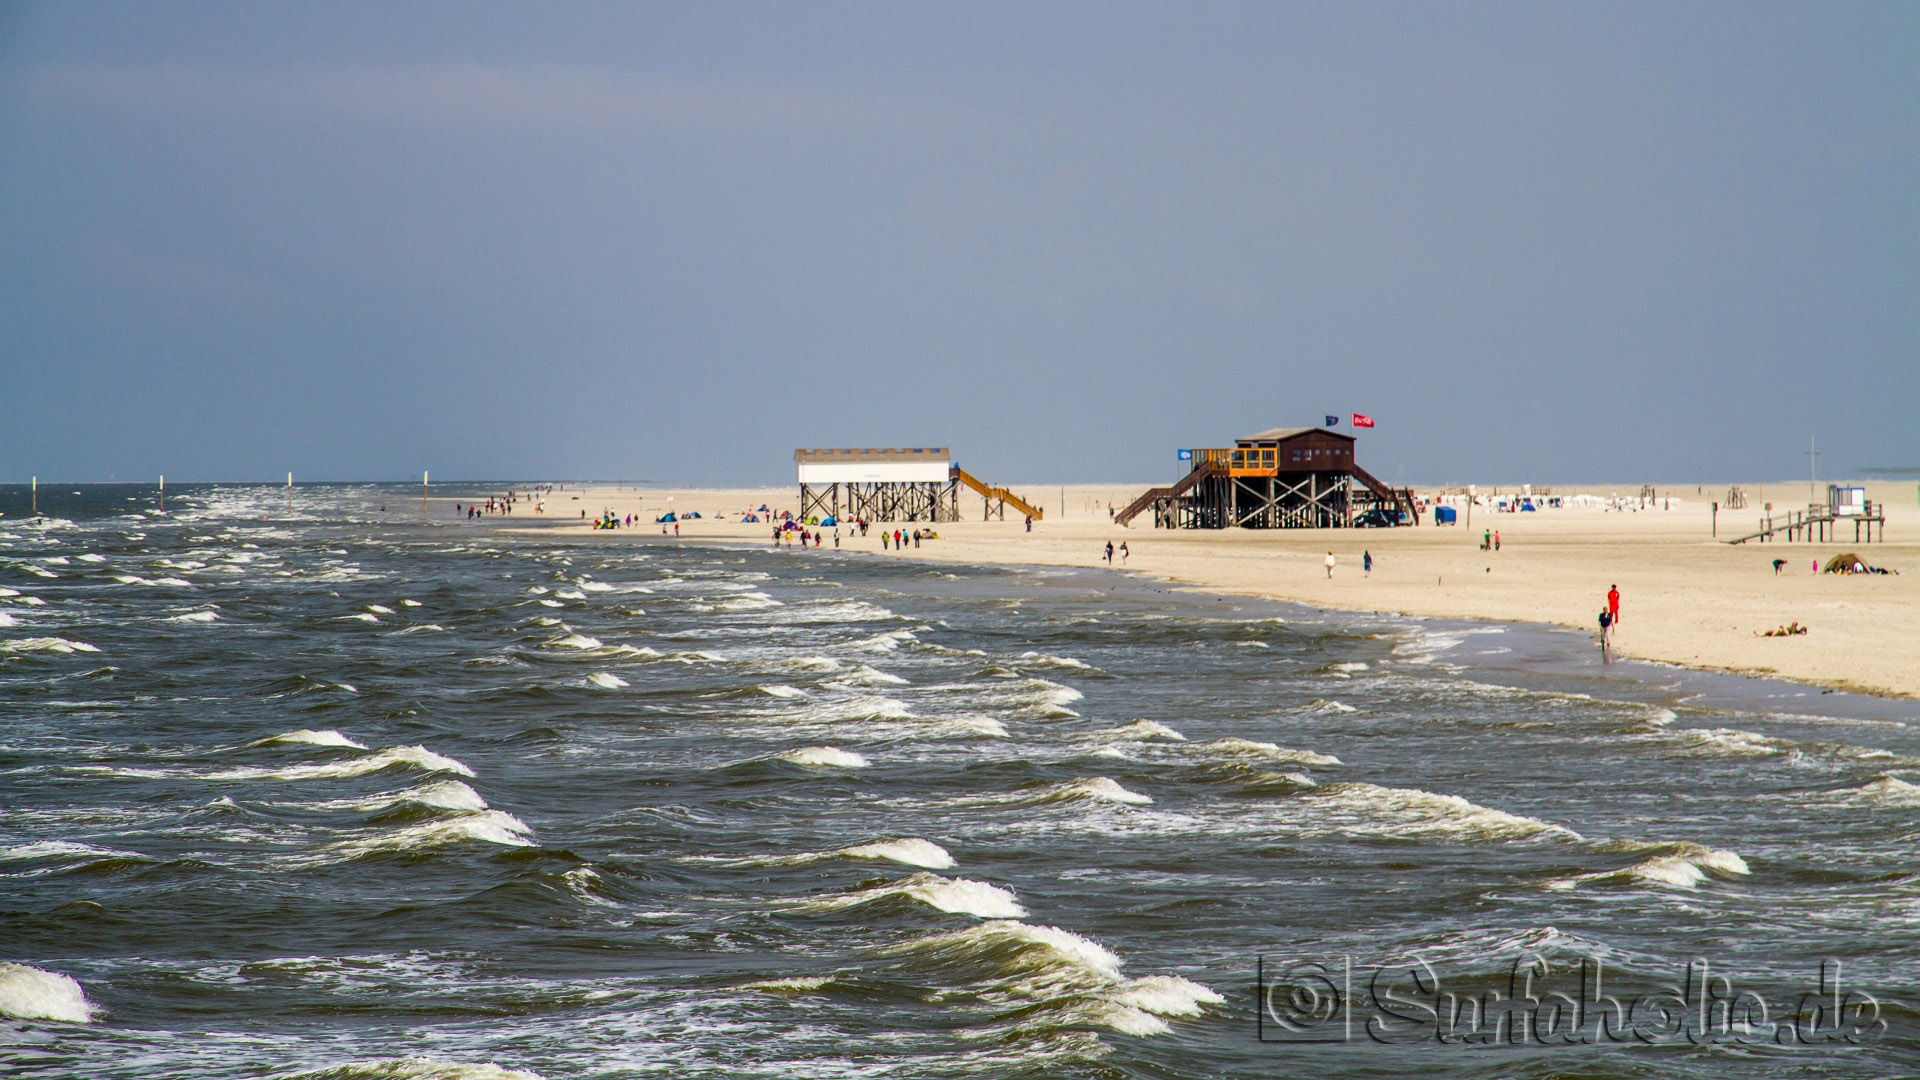 photos kategorie eiderstedt bild st peter ording surfverleih am strand. Black Bedroom Furniture Sets. Home Design Ideas